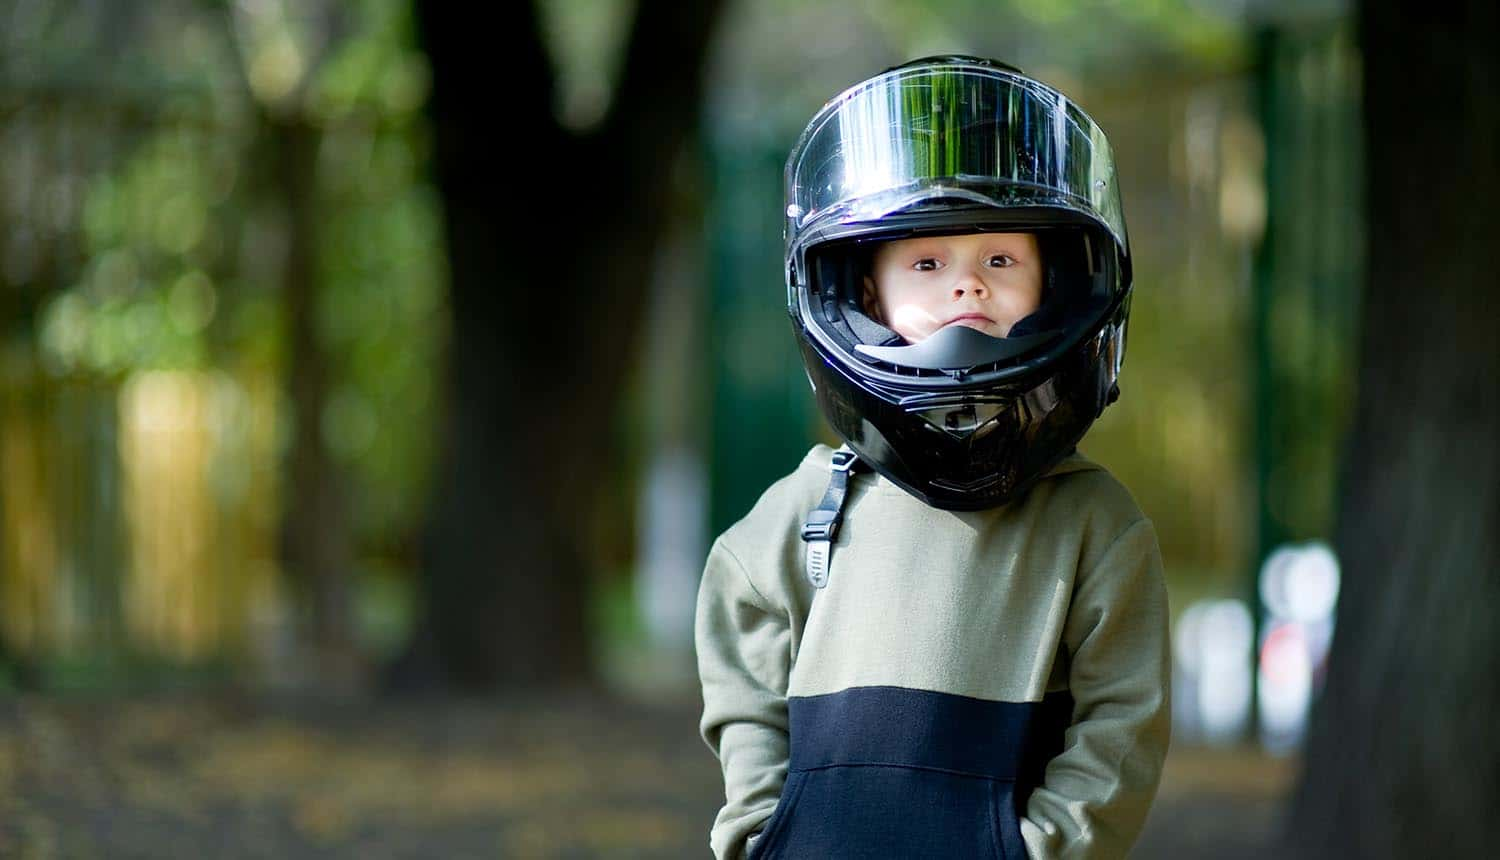 Kid with a big motorcycle helmet on his head showing politicians warning FTC against weaking COPPA